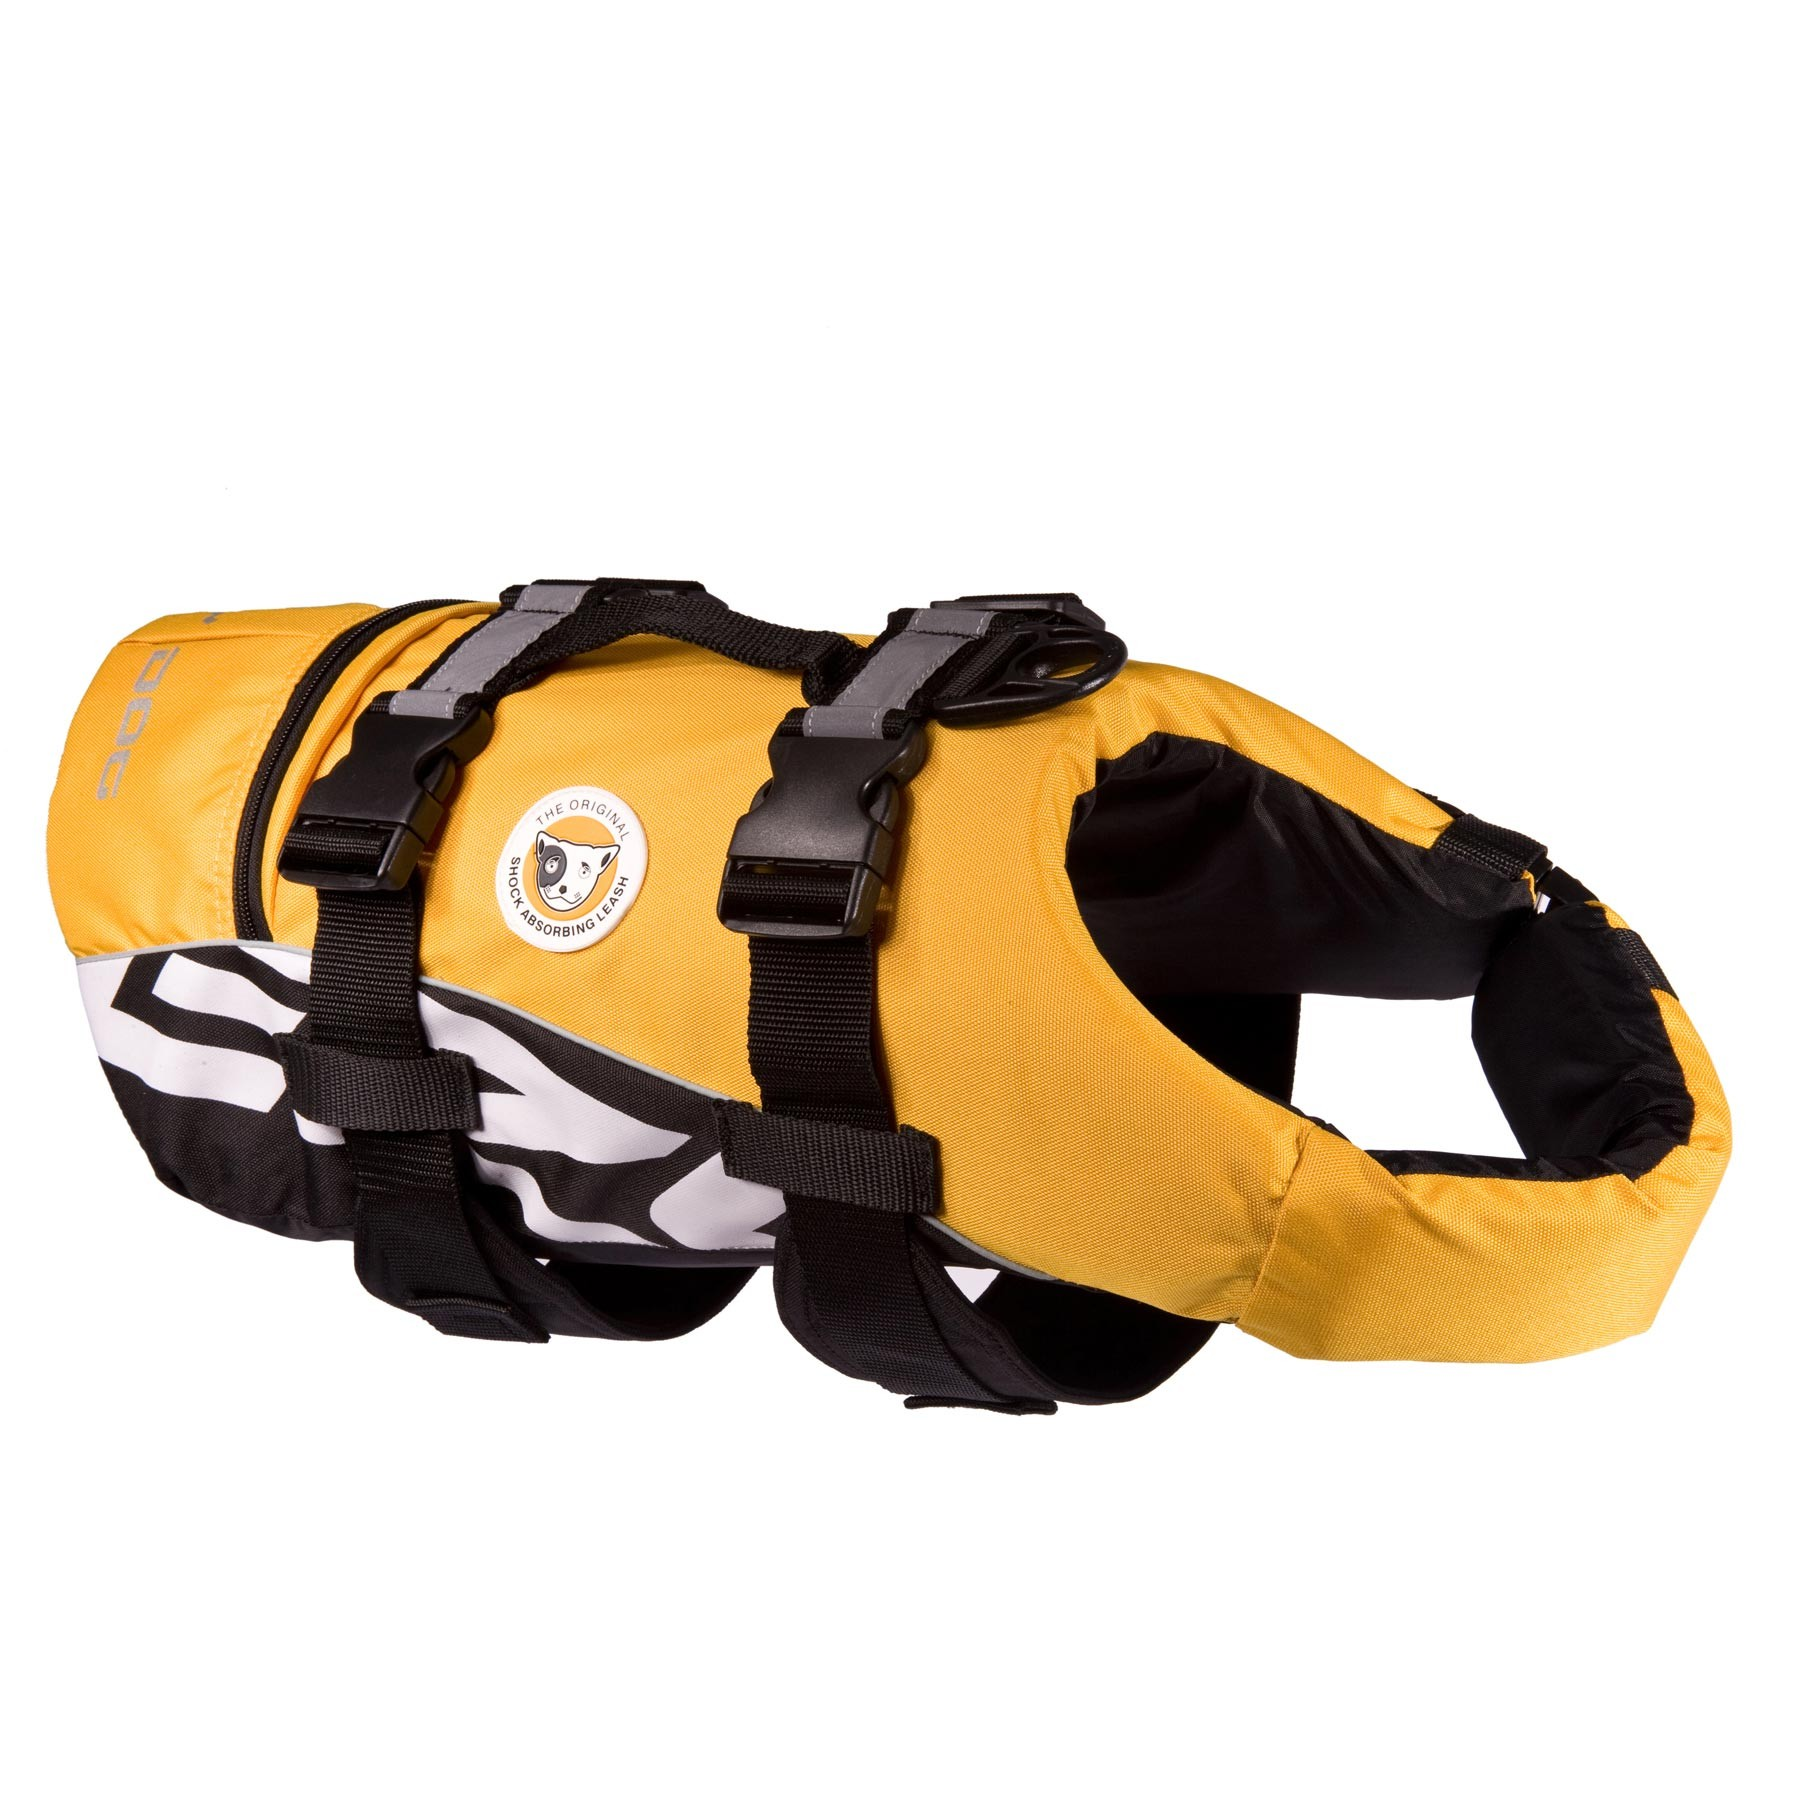 Dog Flotation Device - Yellow